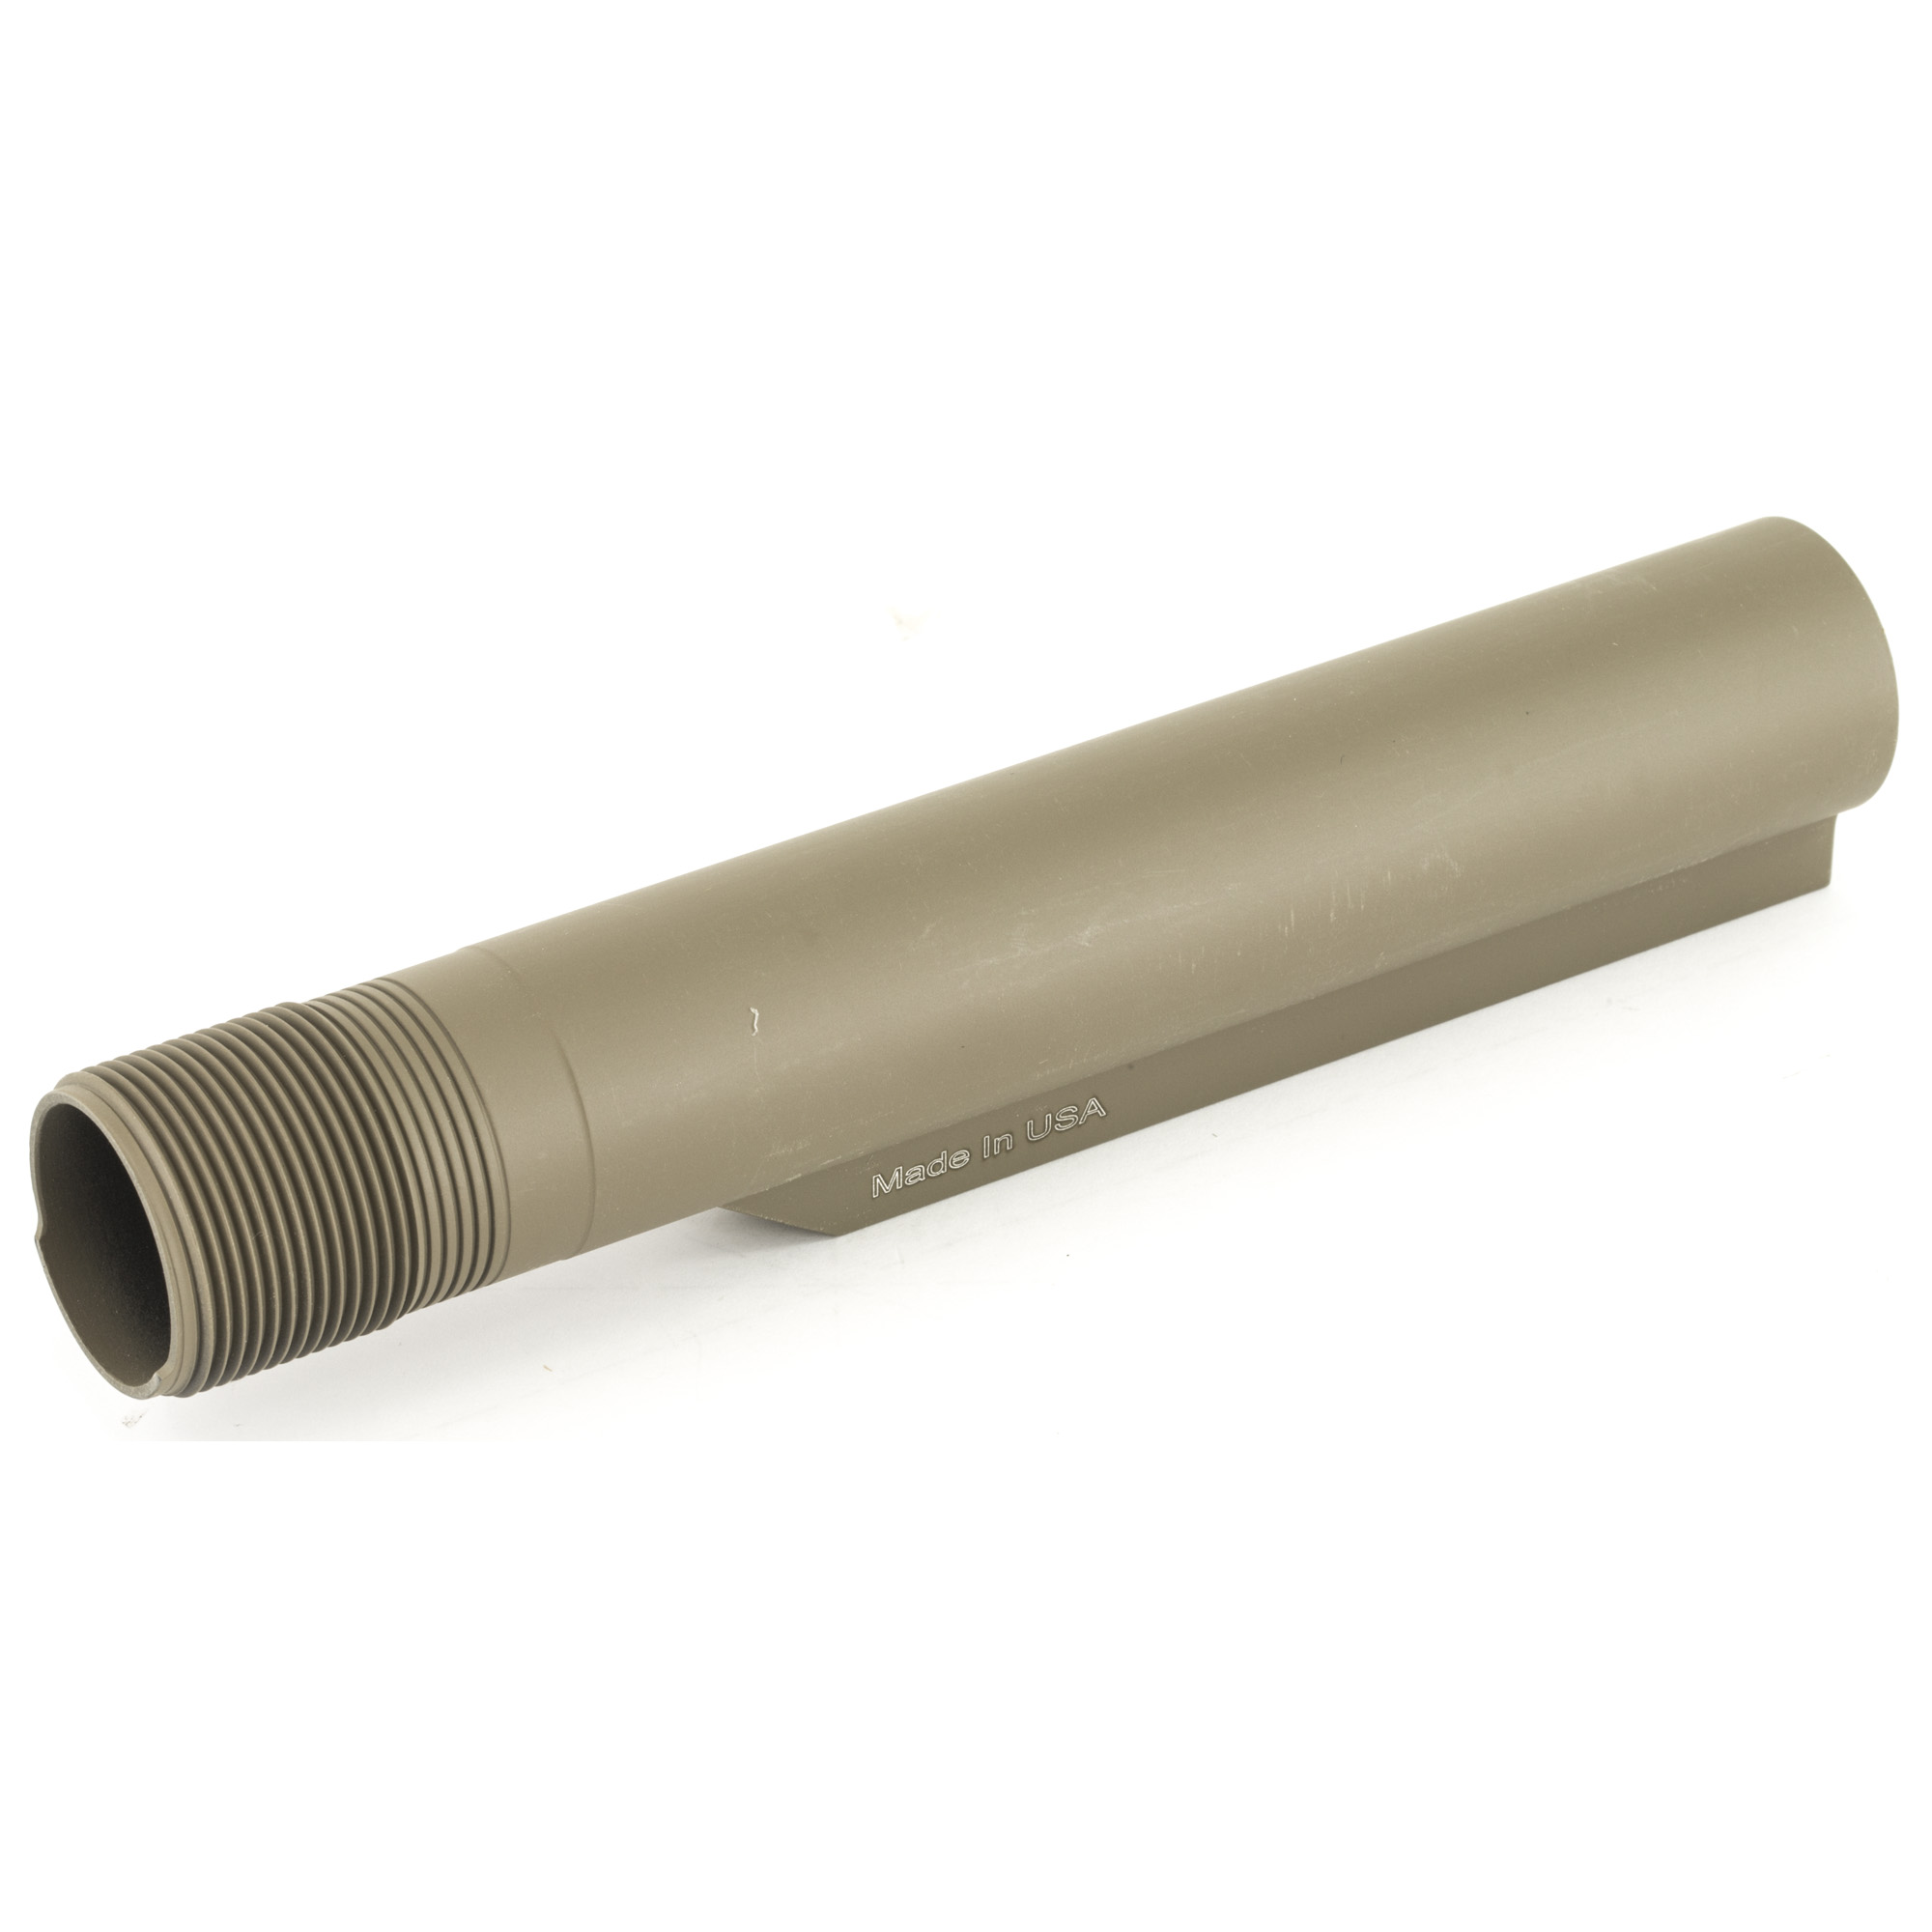 The UTG Pro Receiver Extension Tube is a 6-position Mil-spec diameter receiver extension tube for AR-15 rifles. It is CNC Machined from 6061-T6 Aircraft Grade Aluminum with Precisely Rolled Threads for Durable Thread Engagement with Lower Receiver. Flat Dark Earth finish.